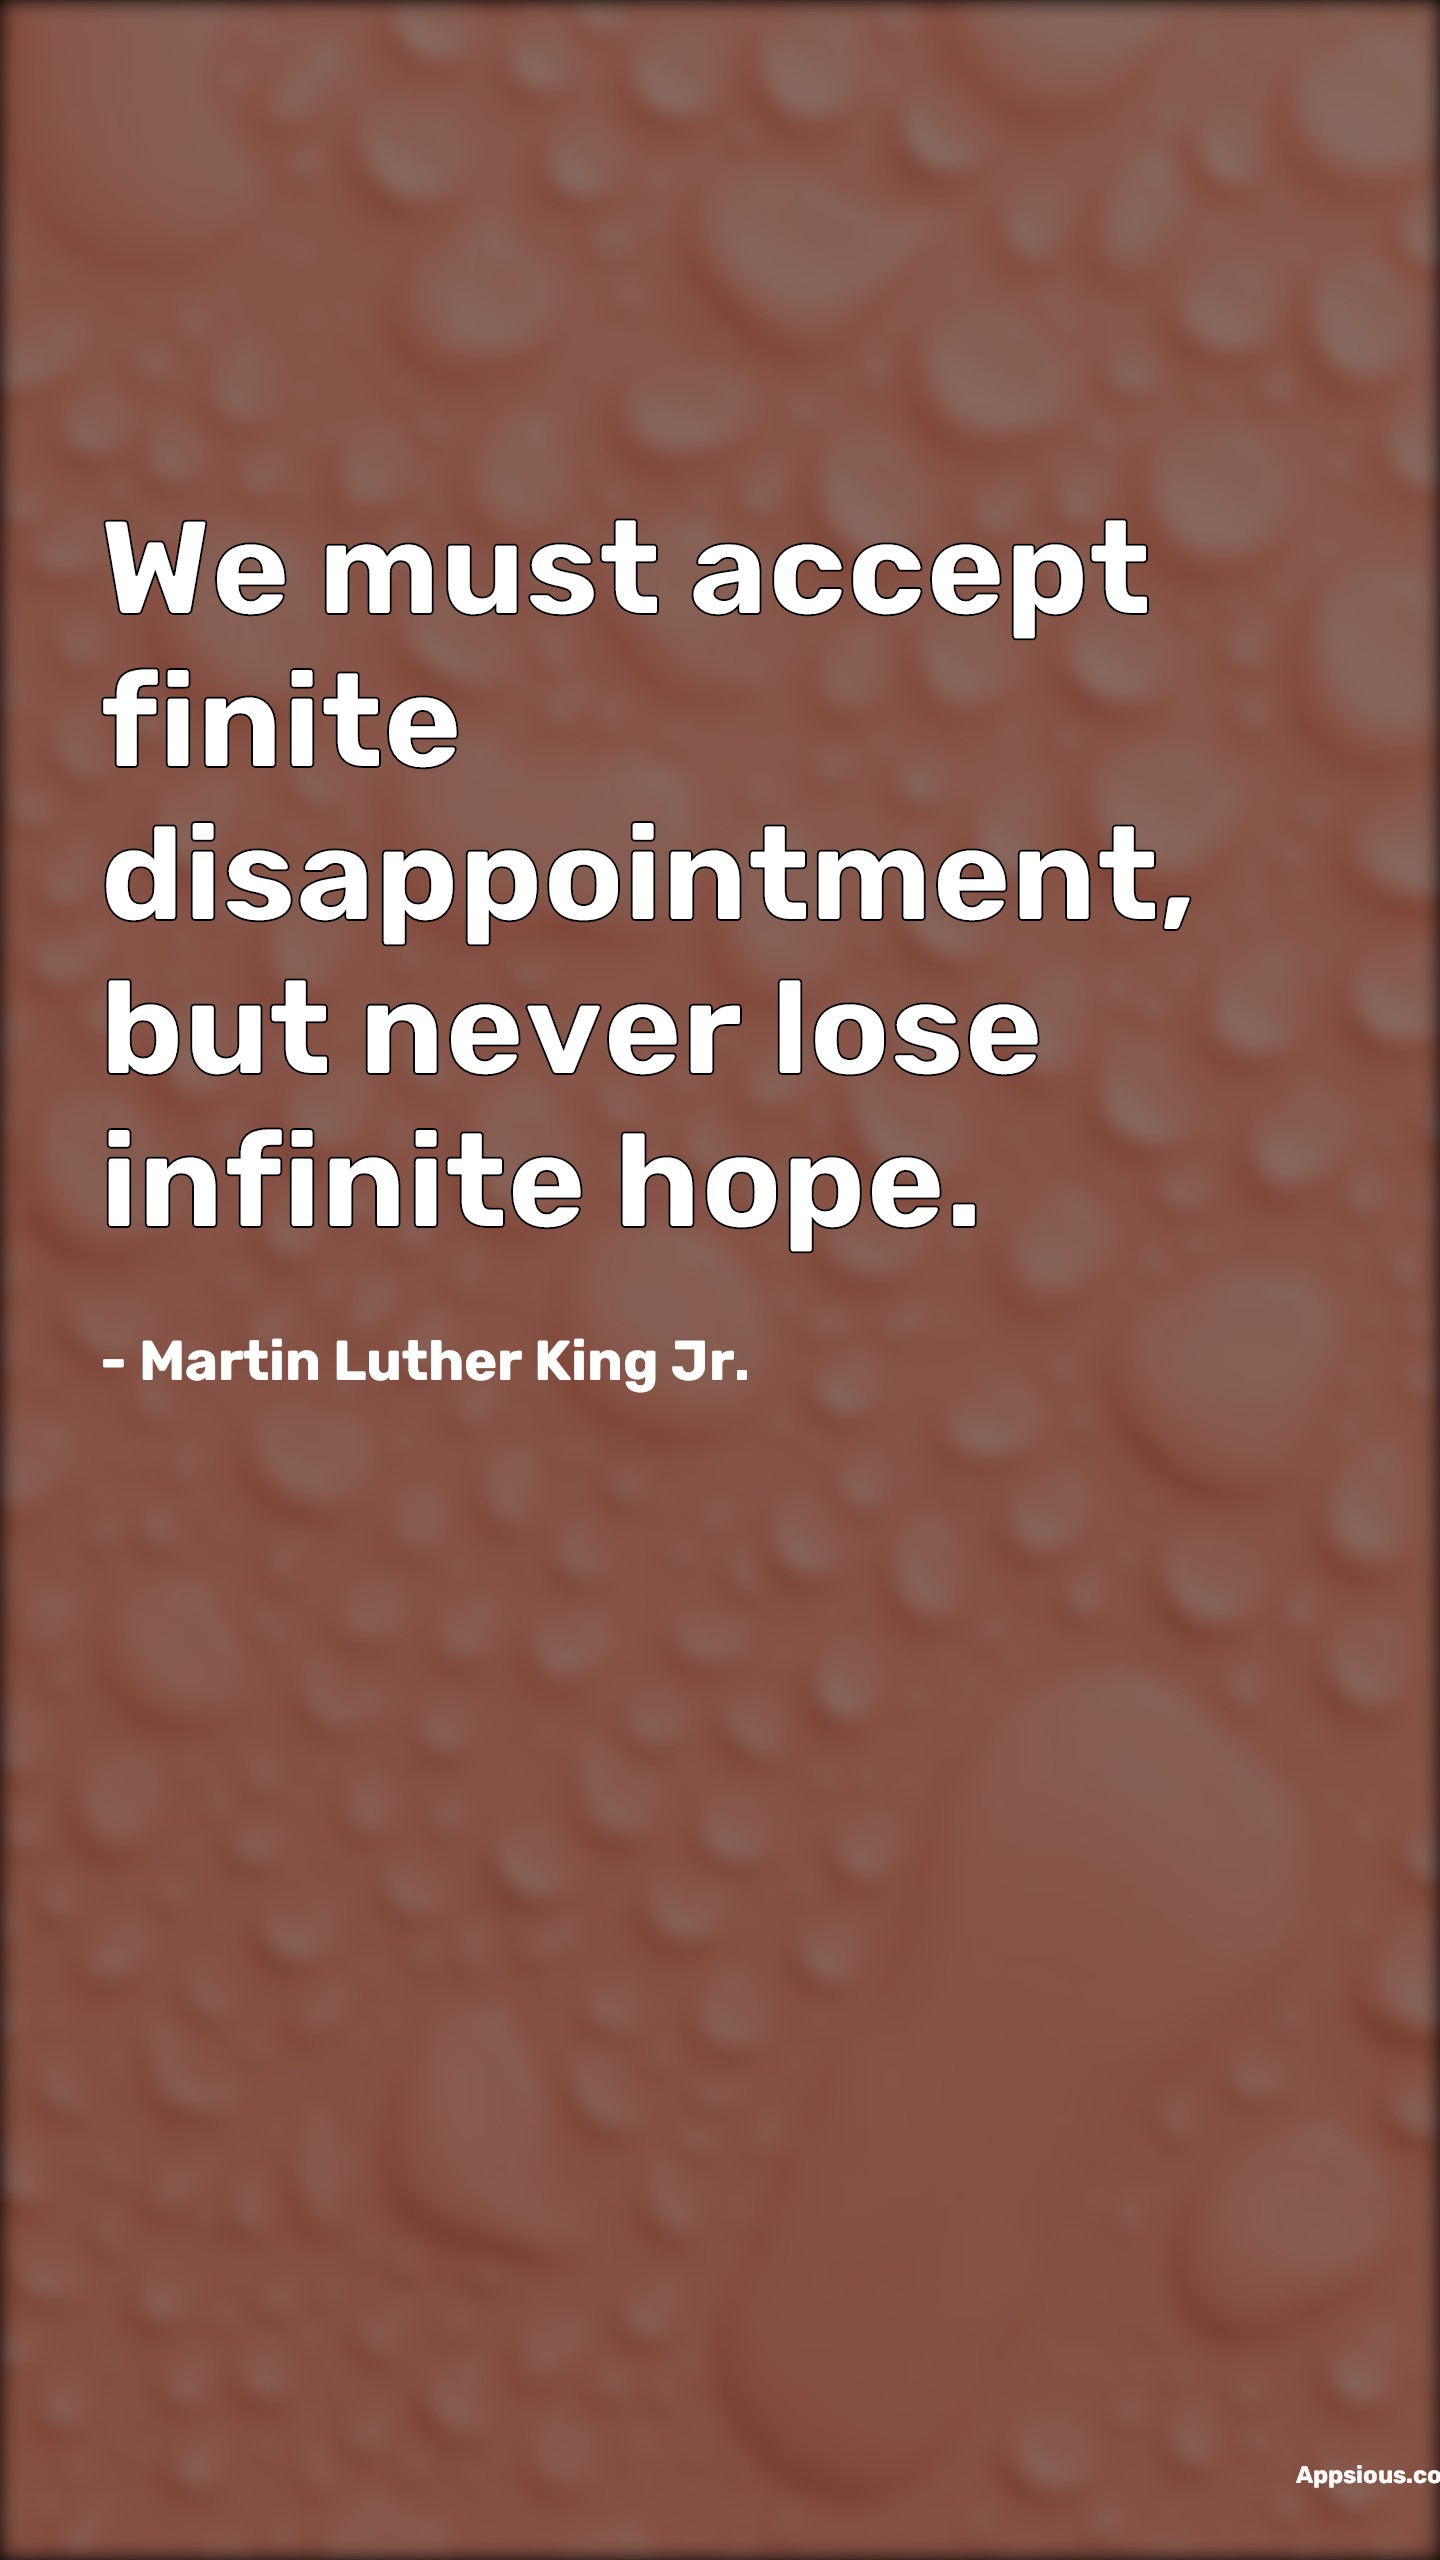 We must accept finite disappointment, but never lose infinite hope.